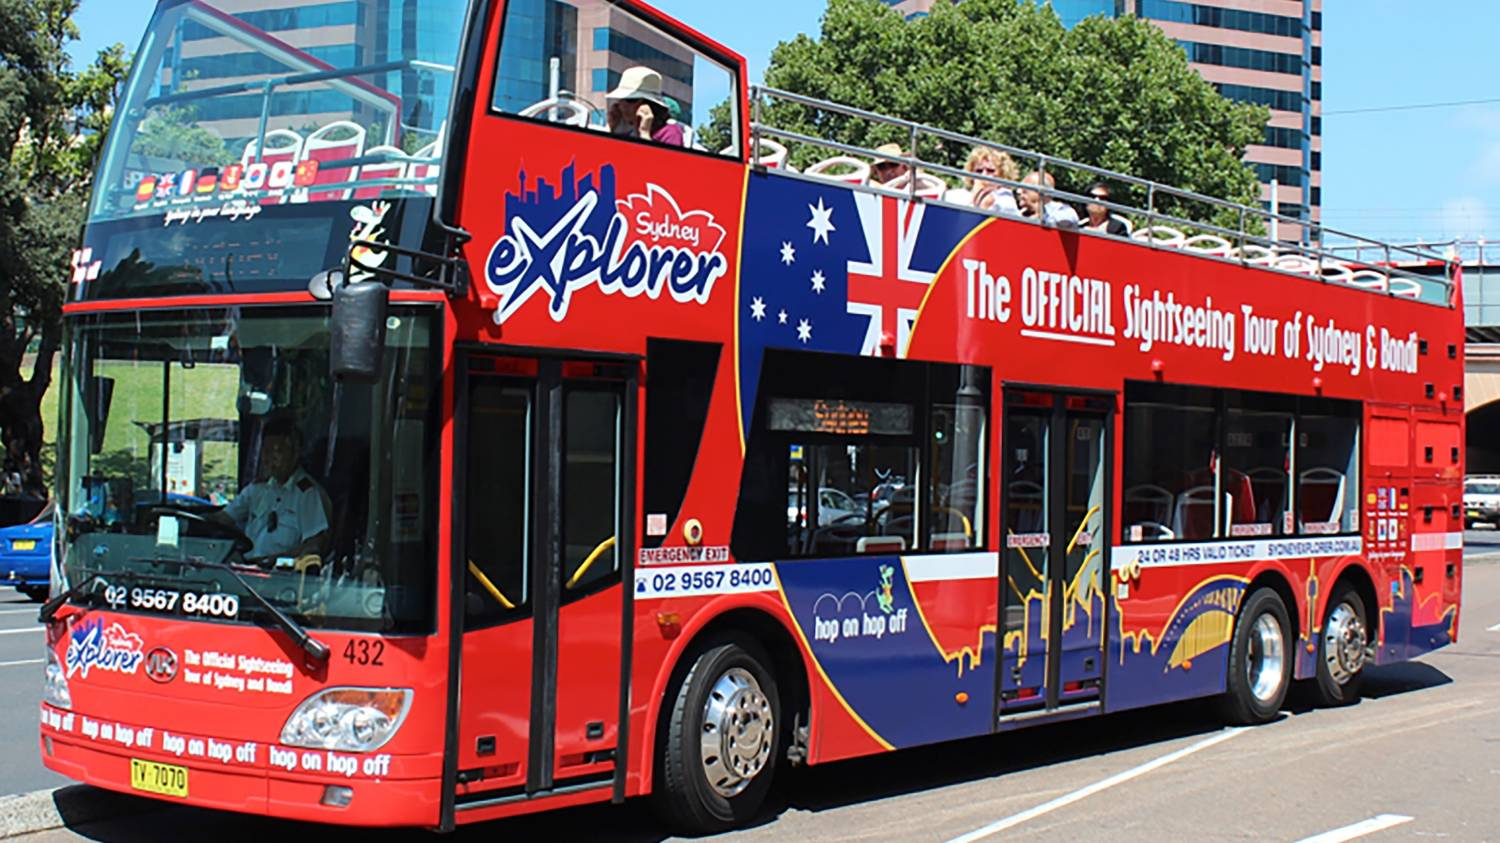 Sydney Hop-on Hop-off Bus Tour - Things To Do In Sydney